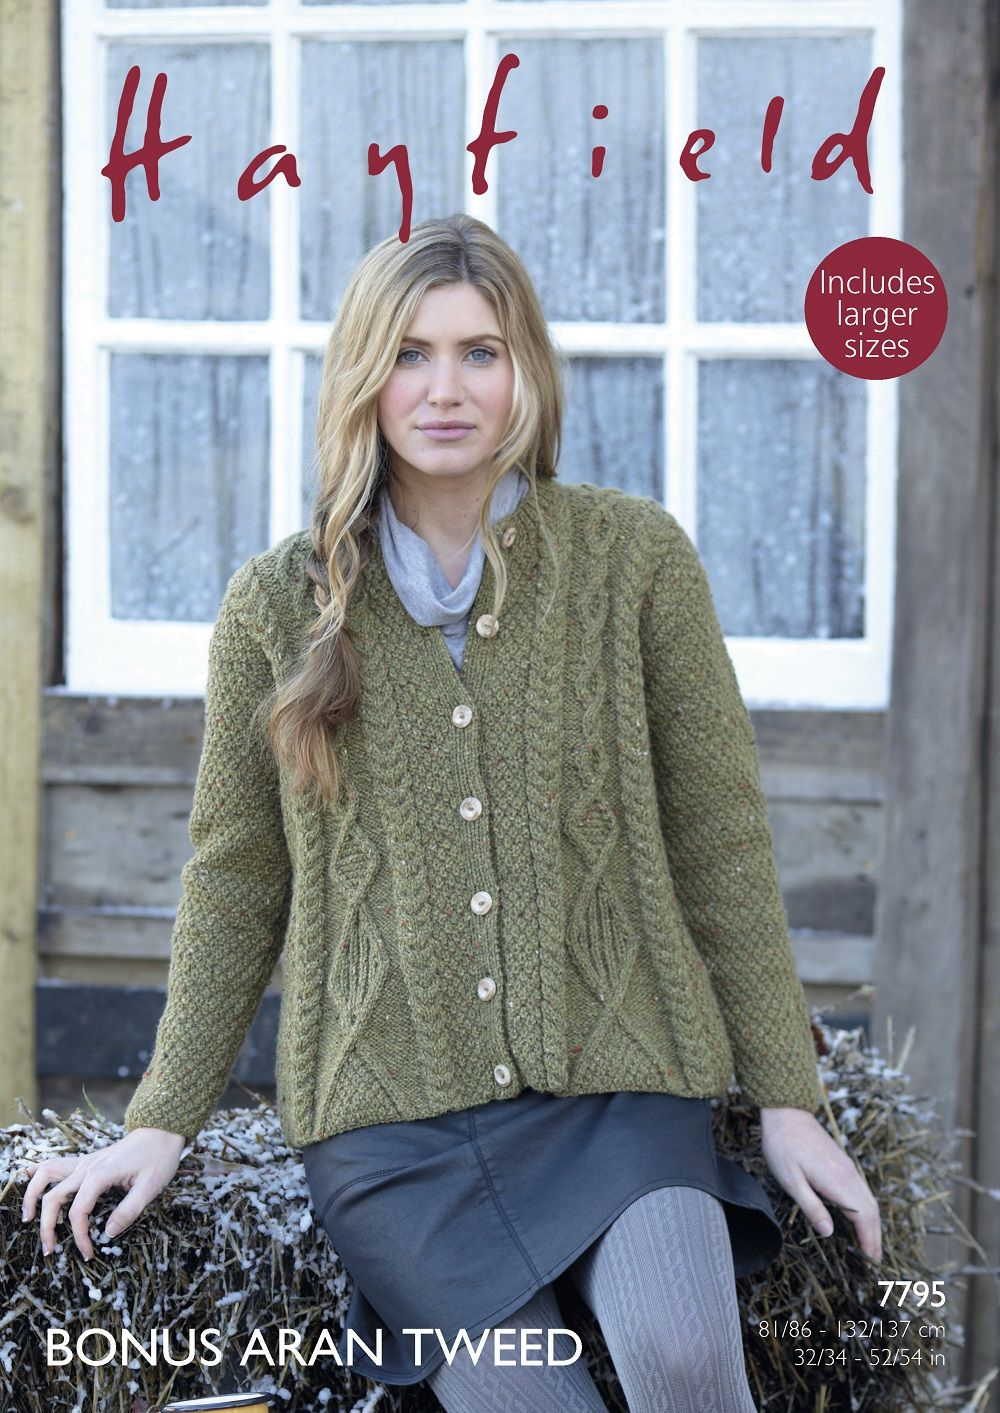 Aran Jumper Knitting Patterns Hayfield Ladies Cardigan Knitting Pattern In Bonus Aran Tweed 7795p Pdf